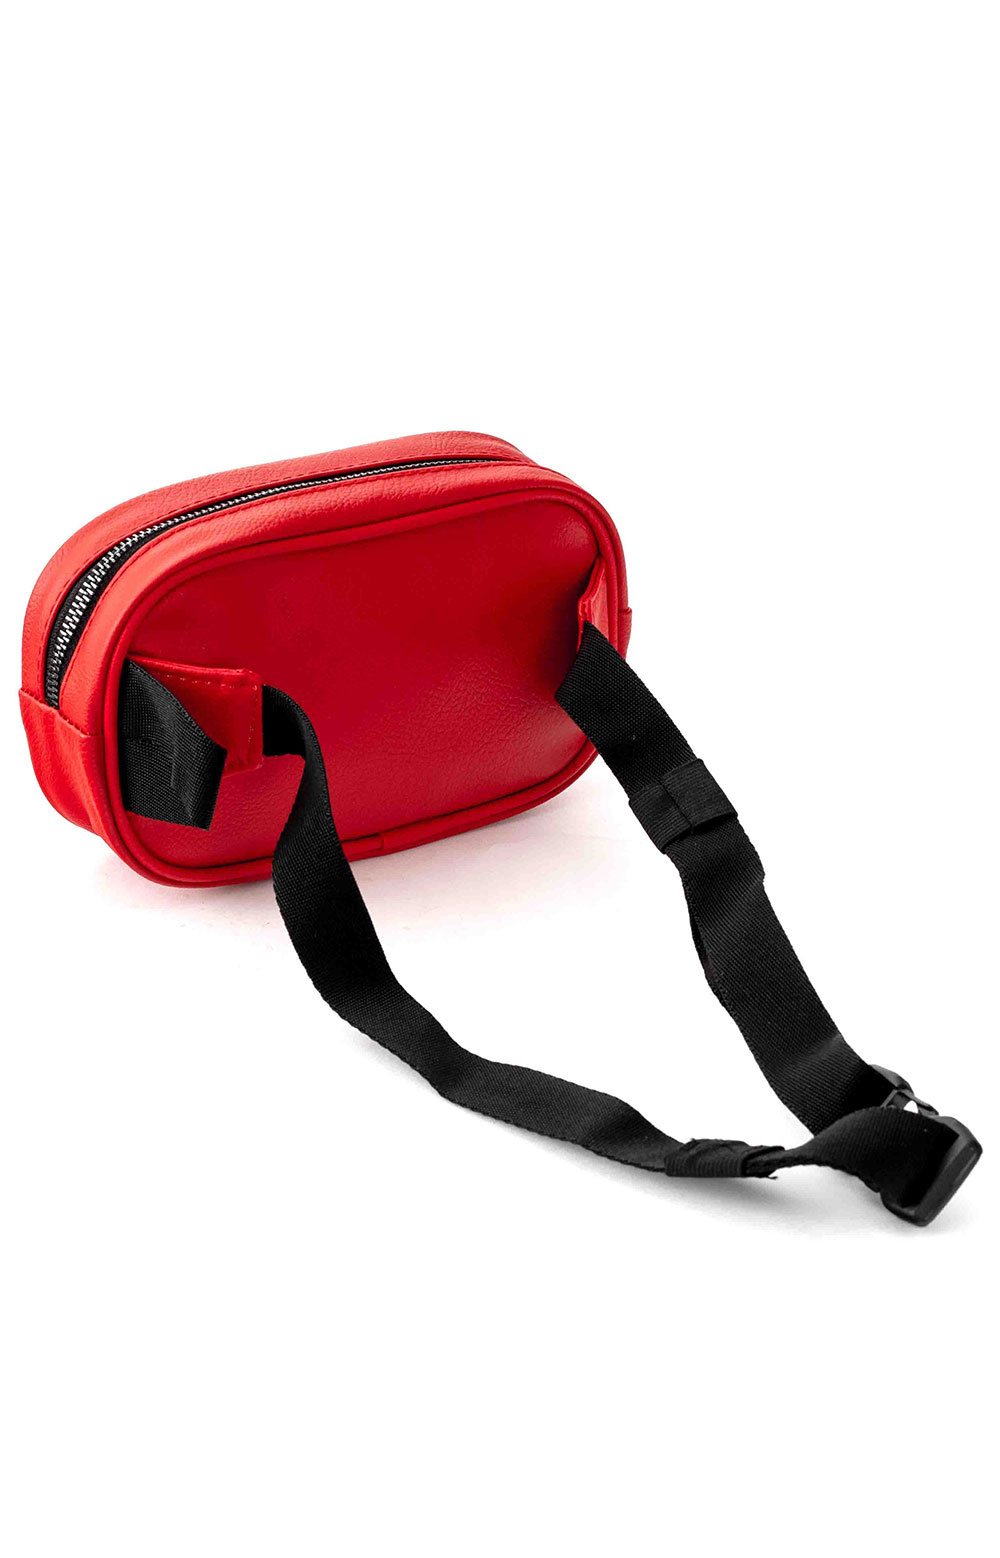 Original PU Leather Waist Pack - Scarlet 3